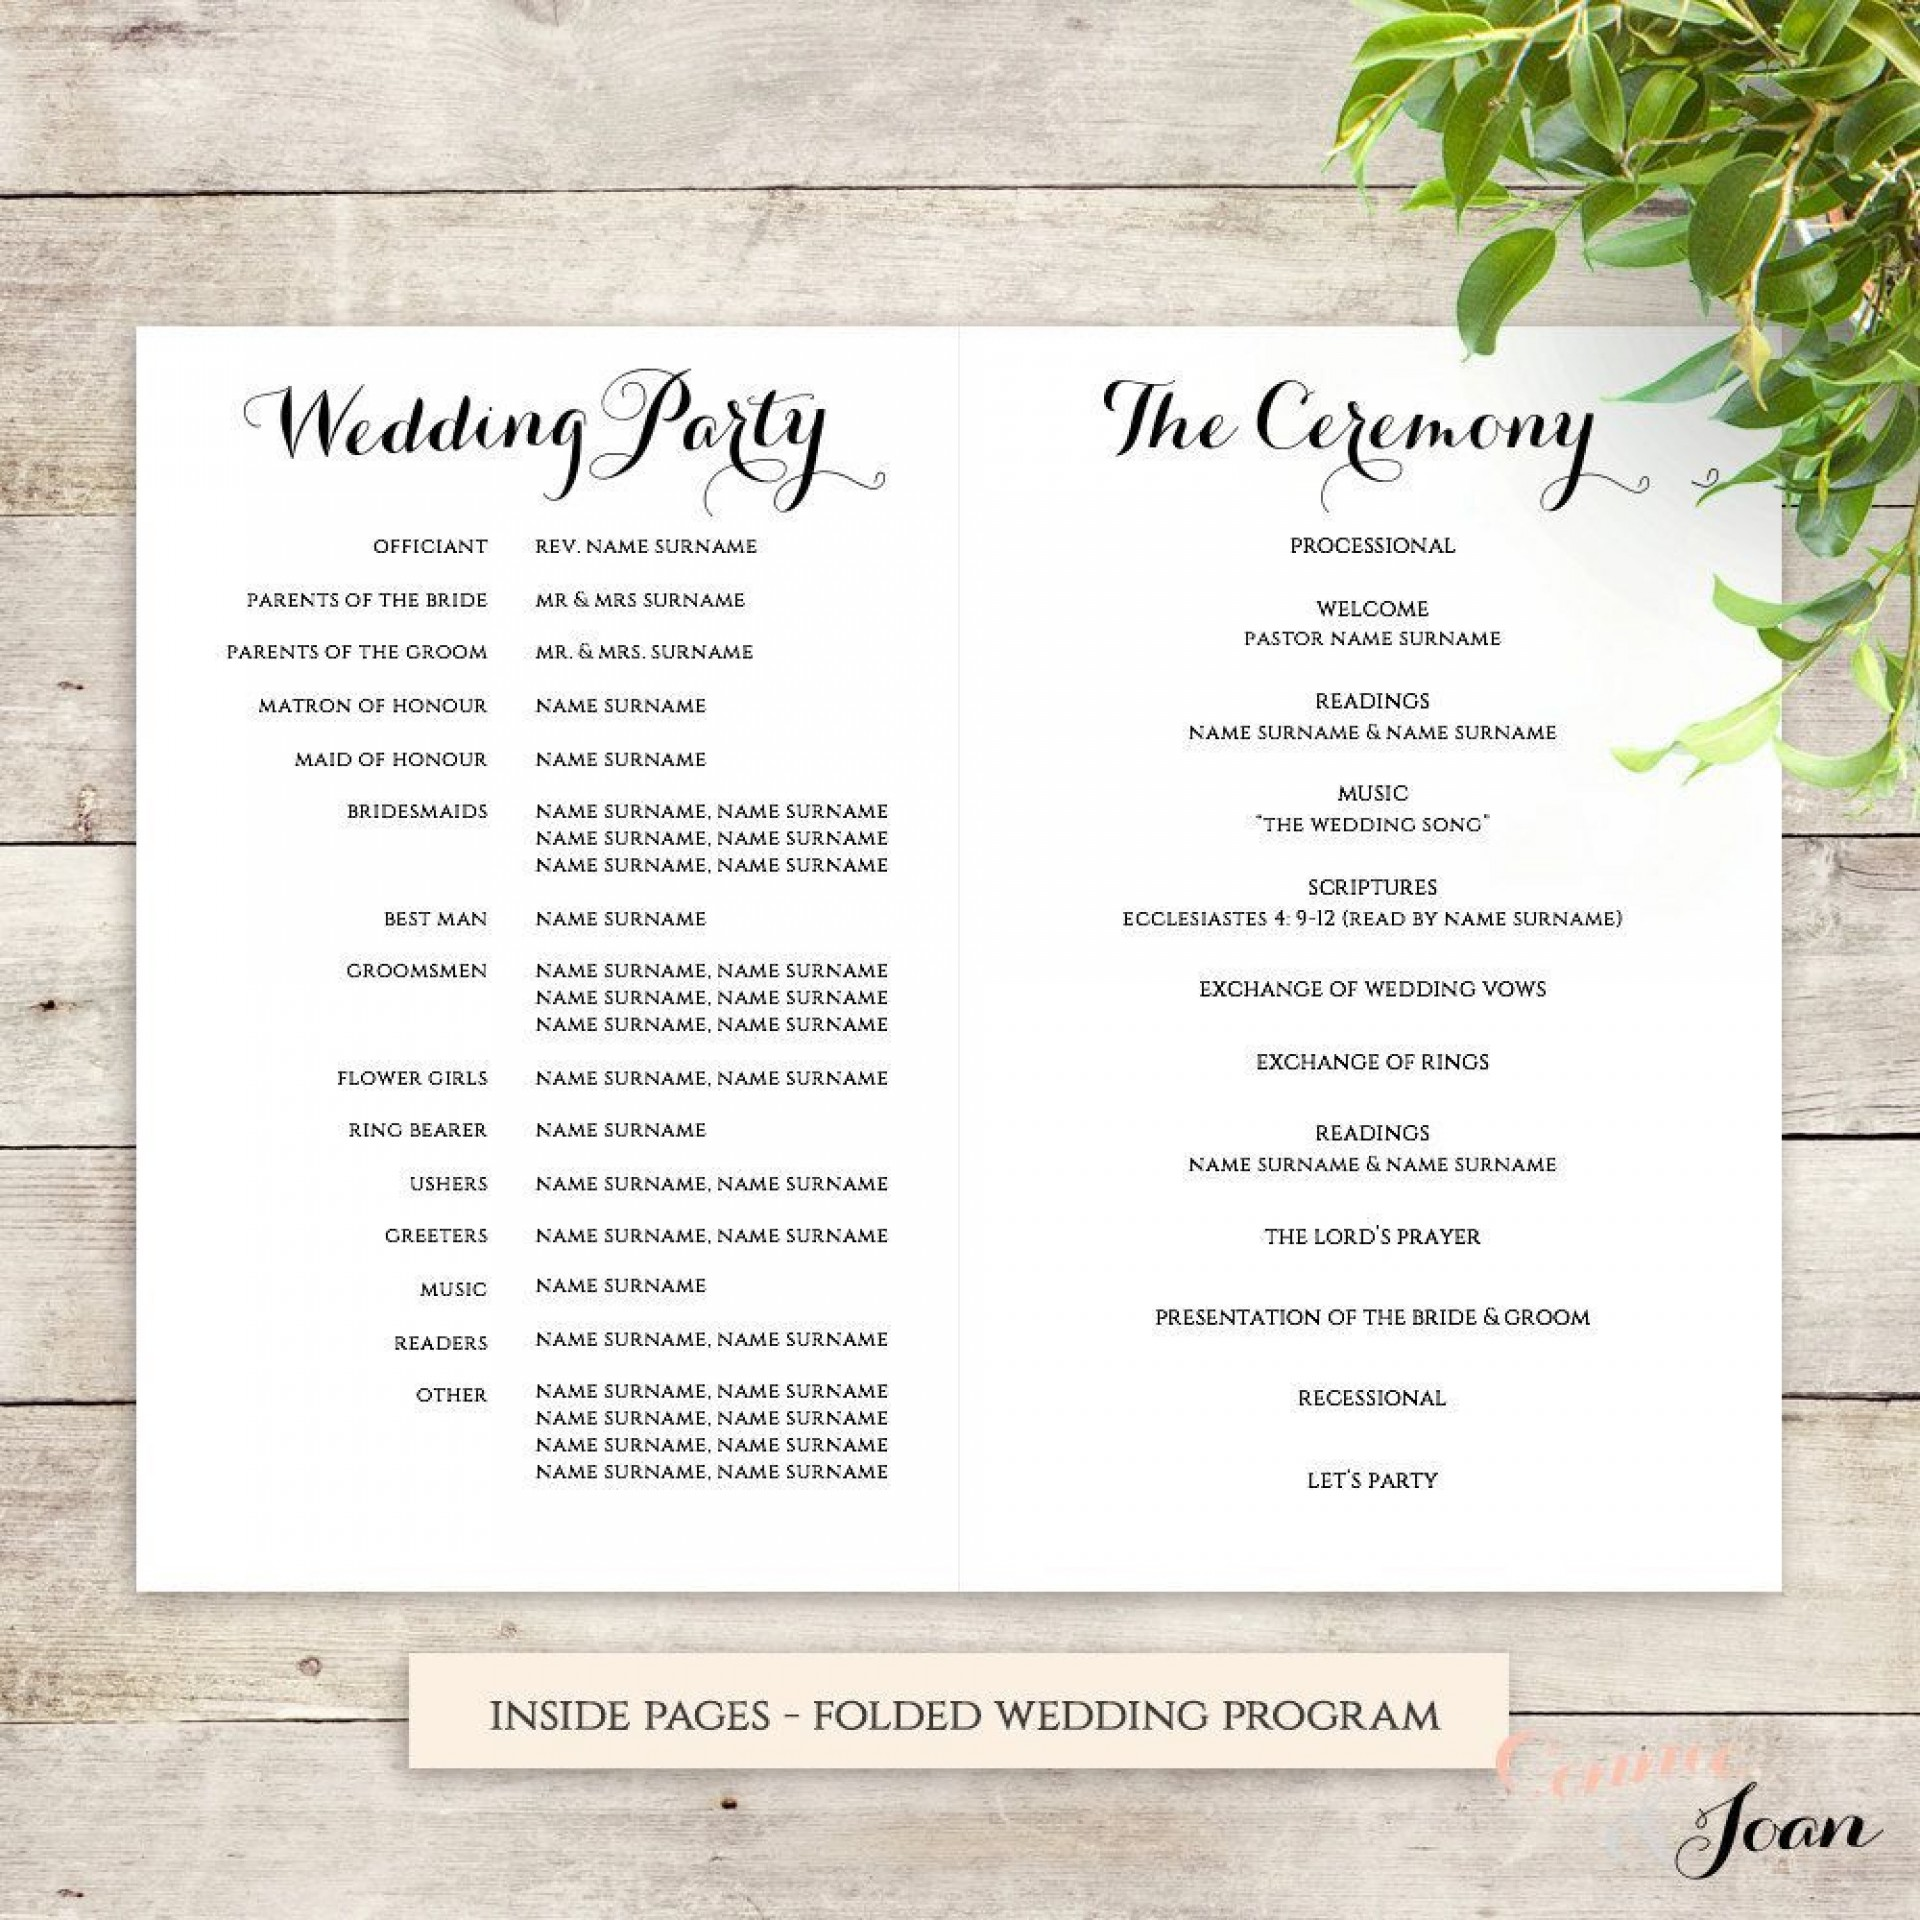 006 Striking Free Wedding Order Of Service Template Microsoft Word Highest Clarity 1920